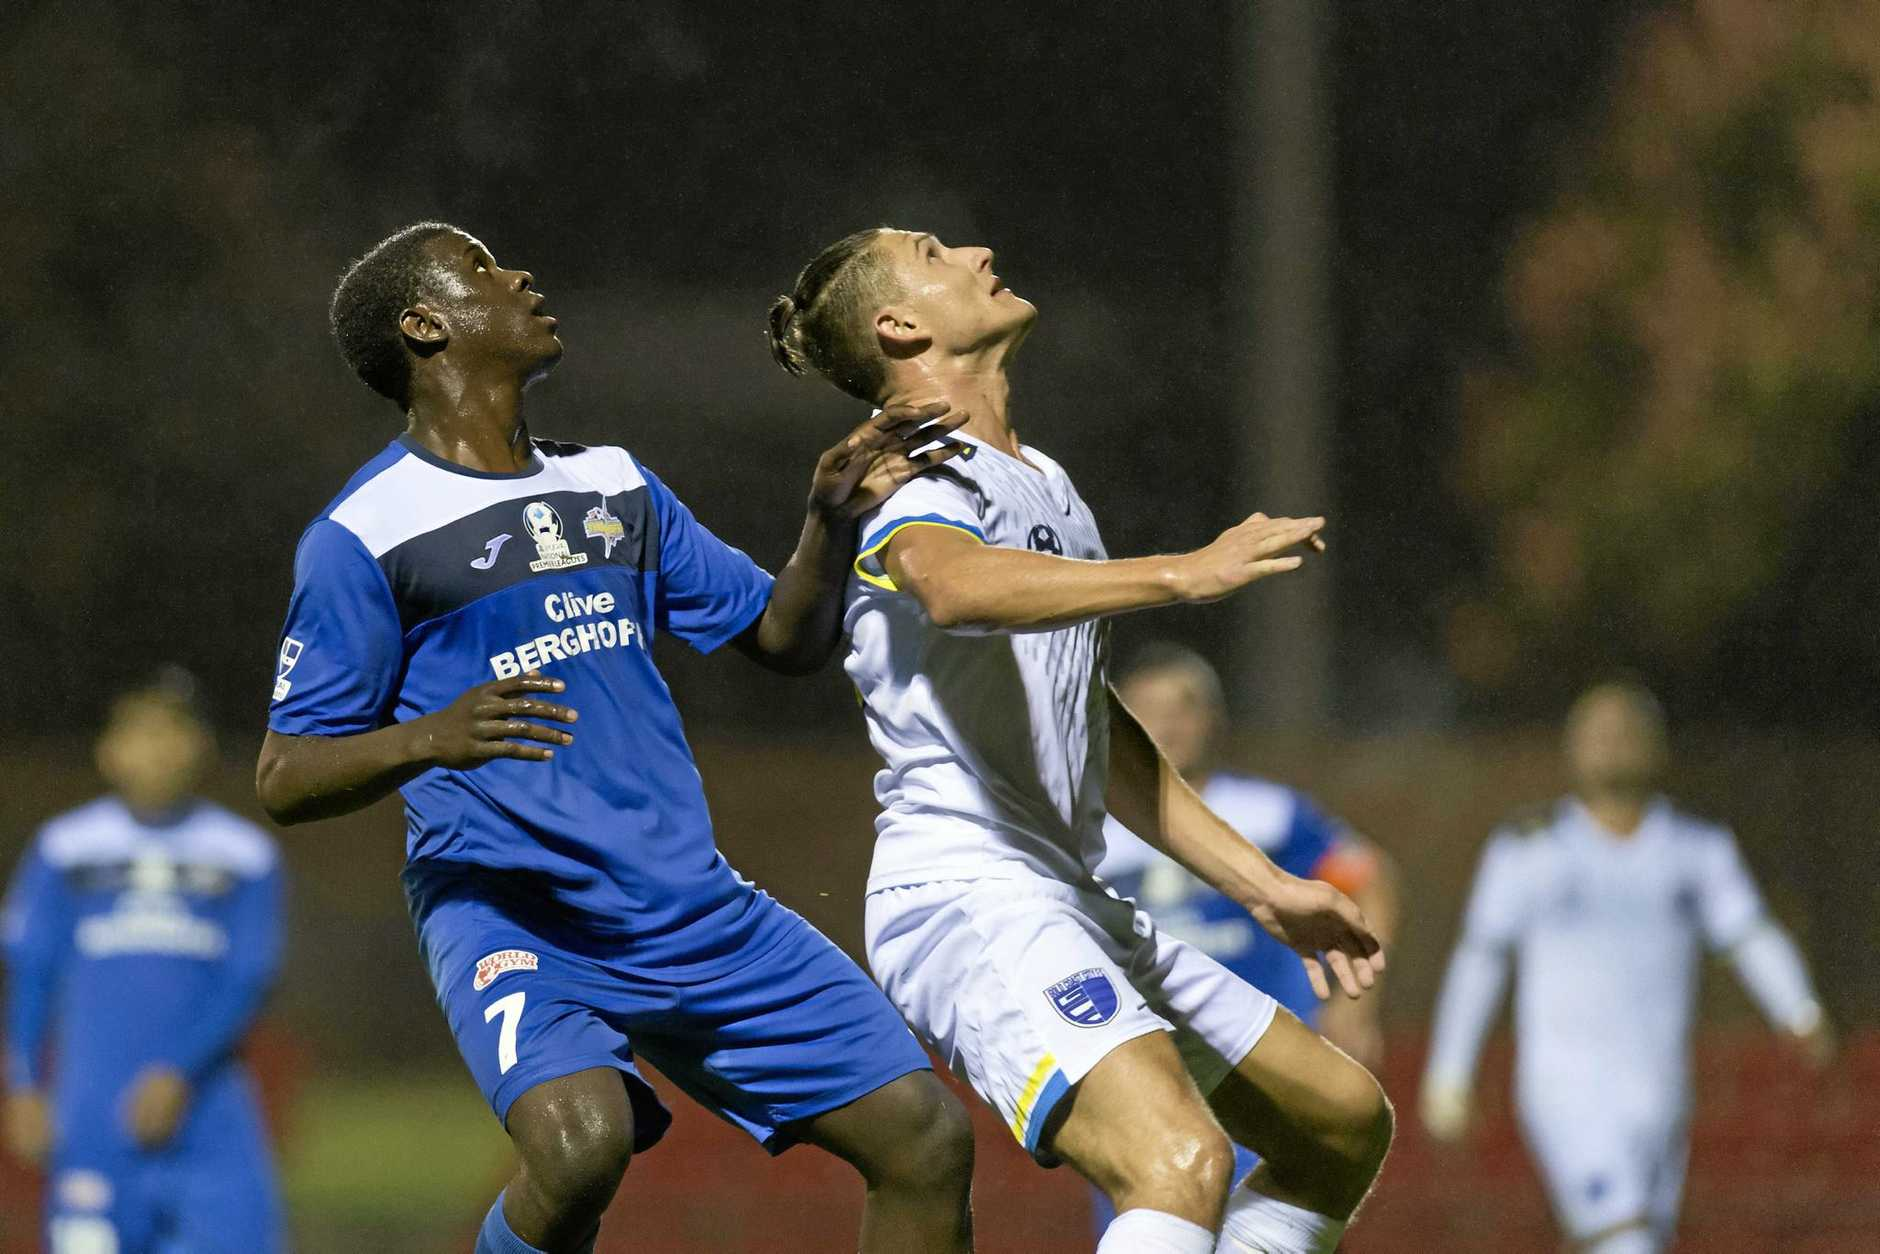 Kimba Kibombo for South-West Thunder against Gold Coast City in FFA Cup round six at Clive Berghofer Stadium.